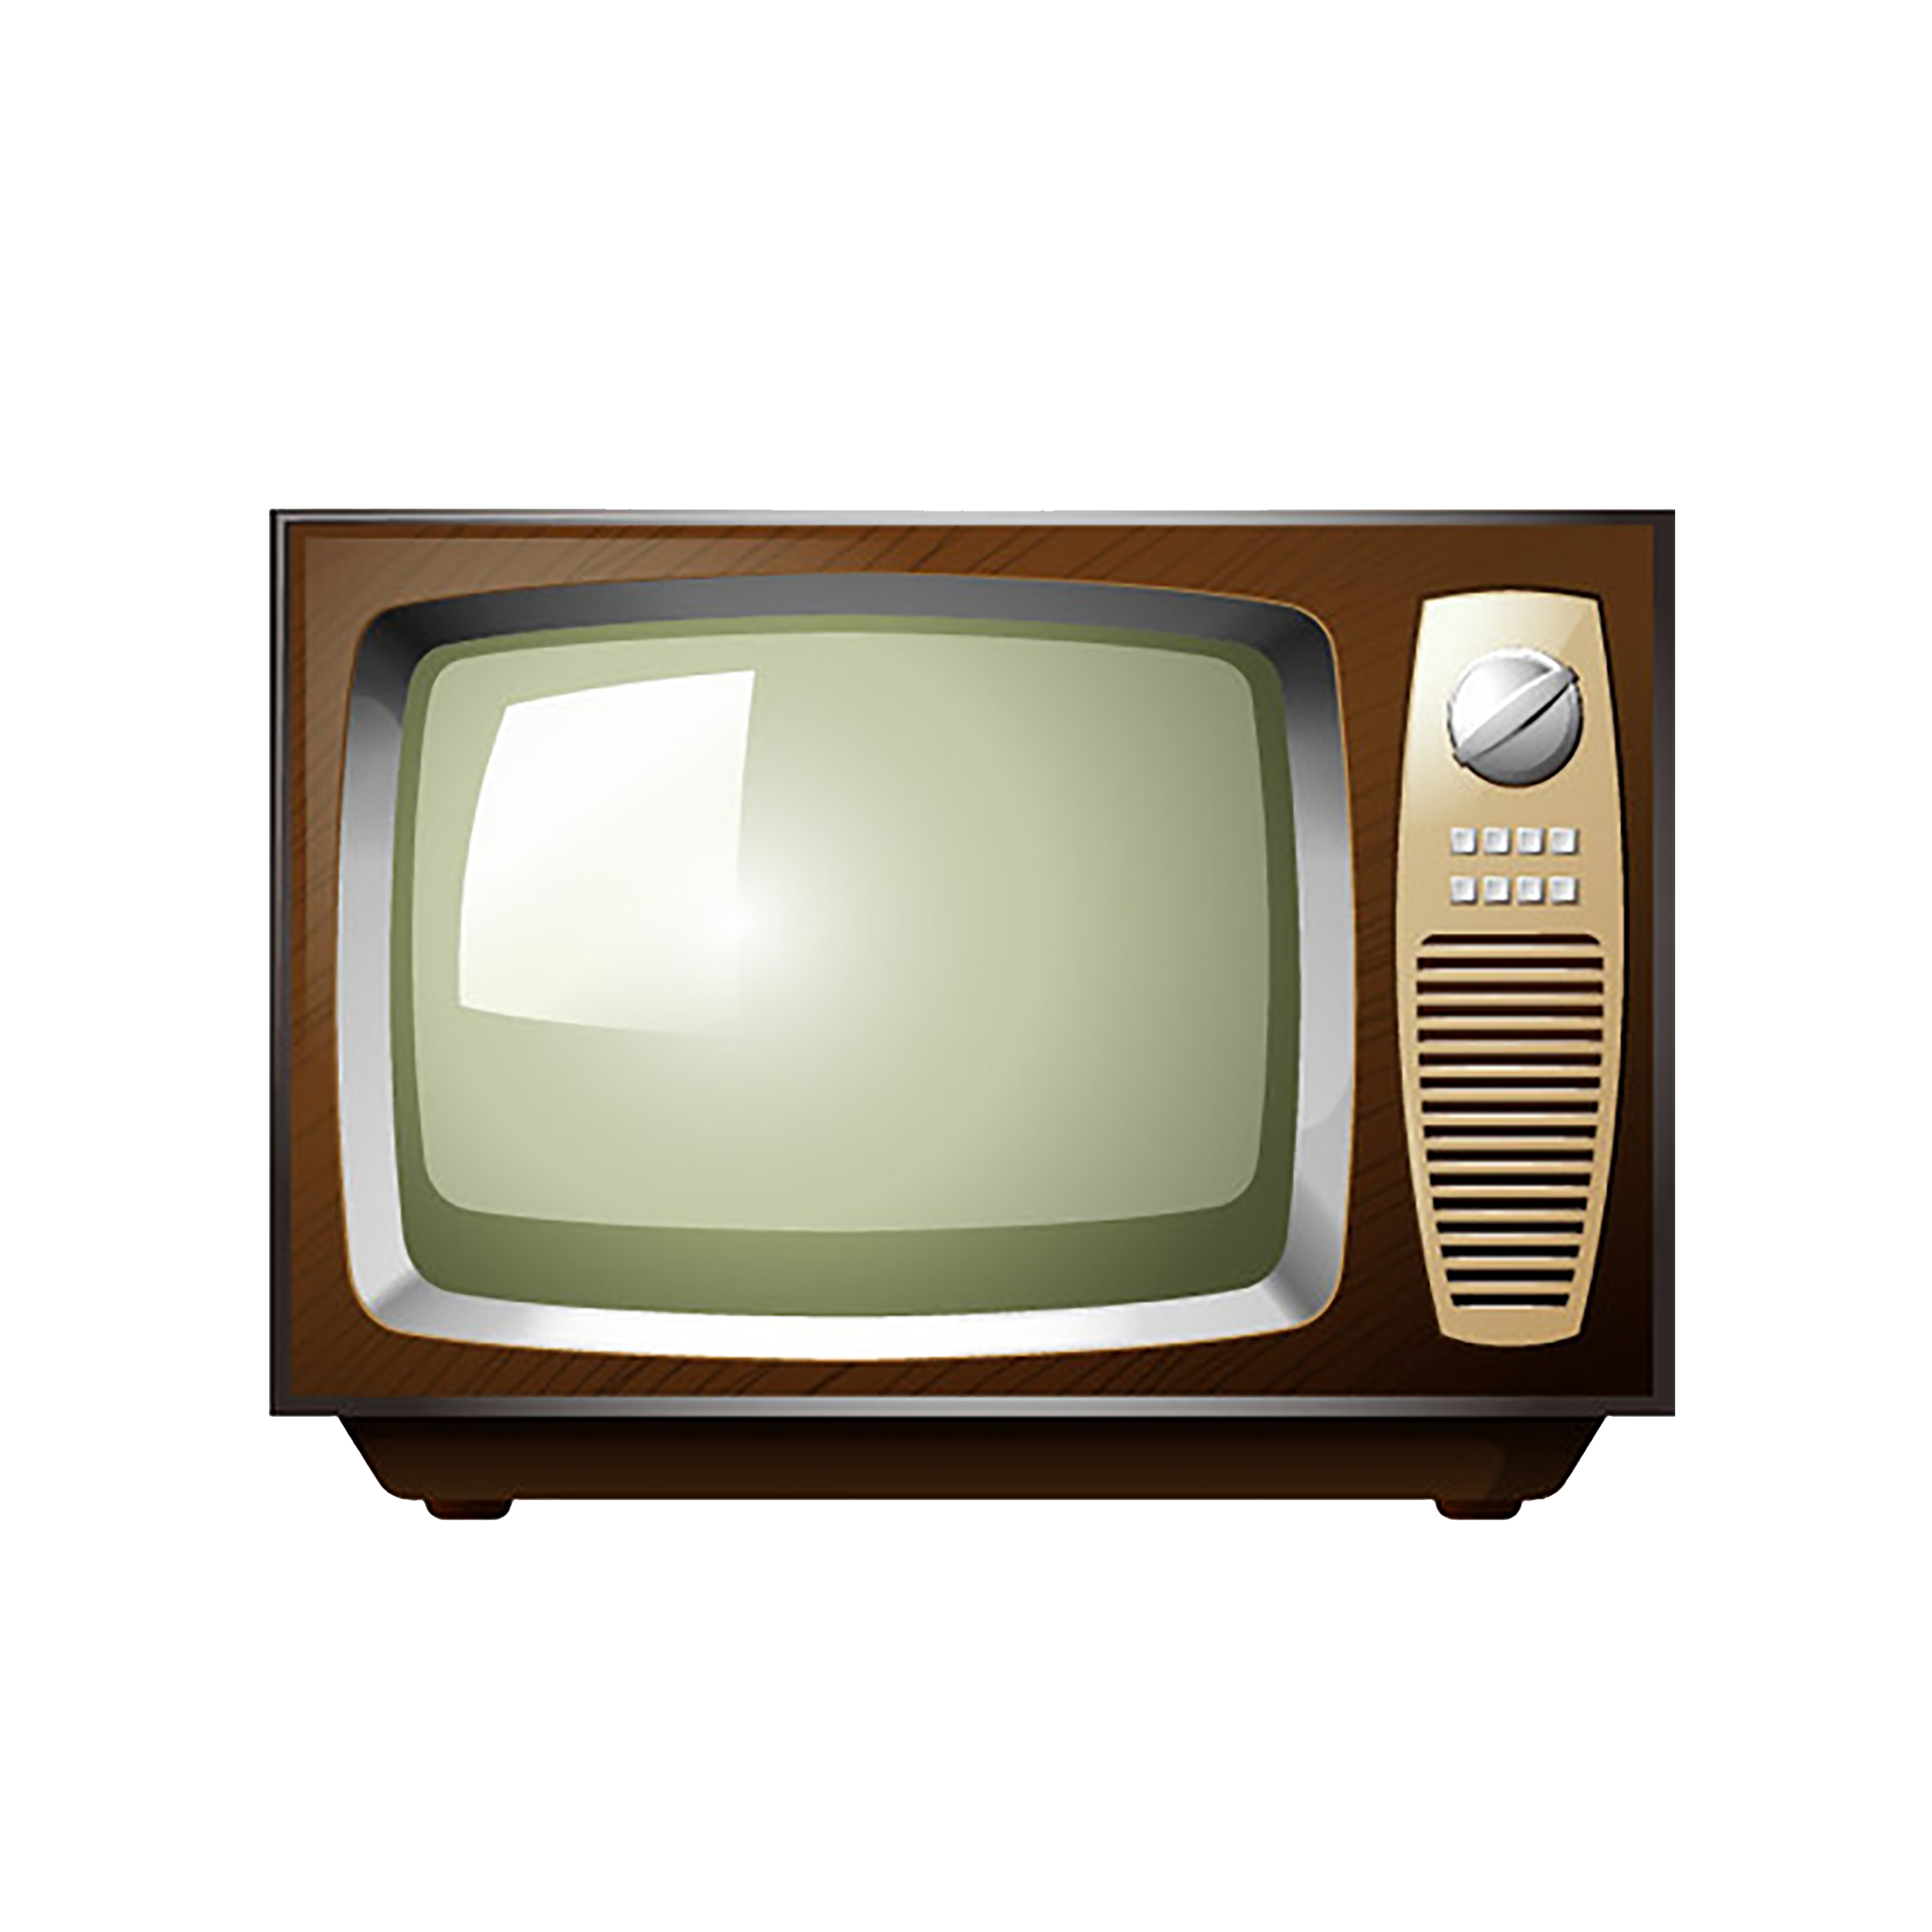 Television Stock illustration.